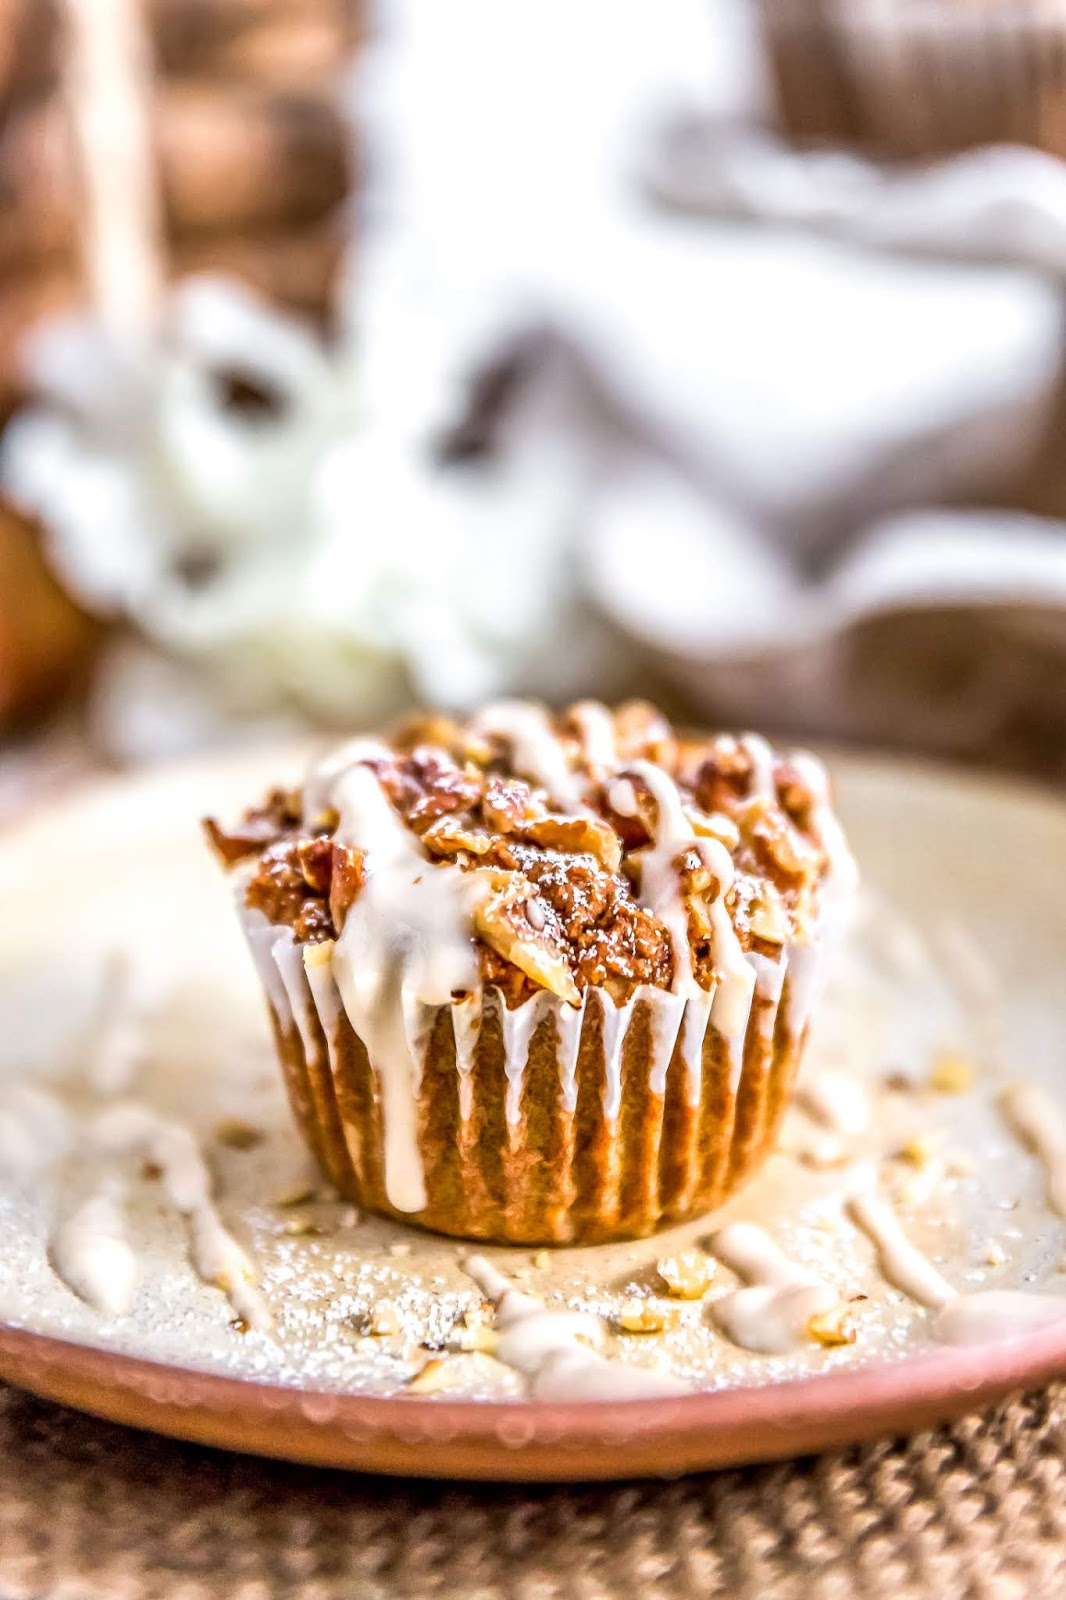 Healthy Vegan Pumpkin Muffins. Need more recipes? 20 Tasty And Nourishing, Yet Quick Vegan Breakfast Recipes Ideas vegan breakfast weightloss | vegan breakfast protein | vegan breakfast healthy easy | vegan breakfast recipe #breakfast #vegan #veganideas #tasty